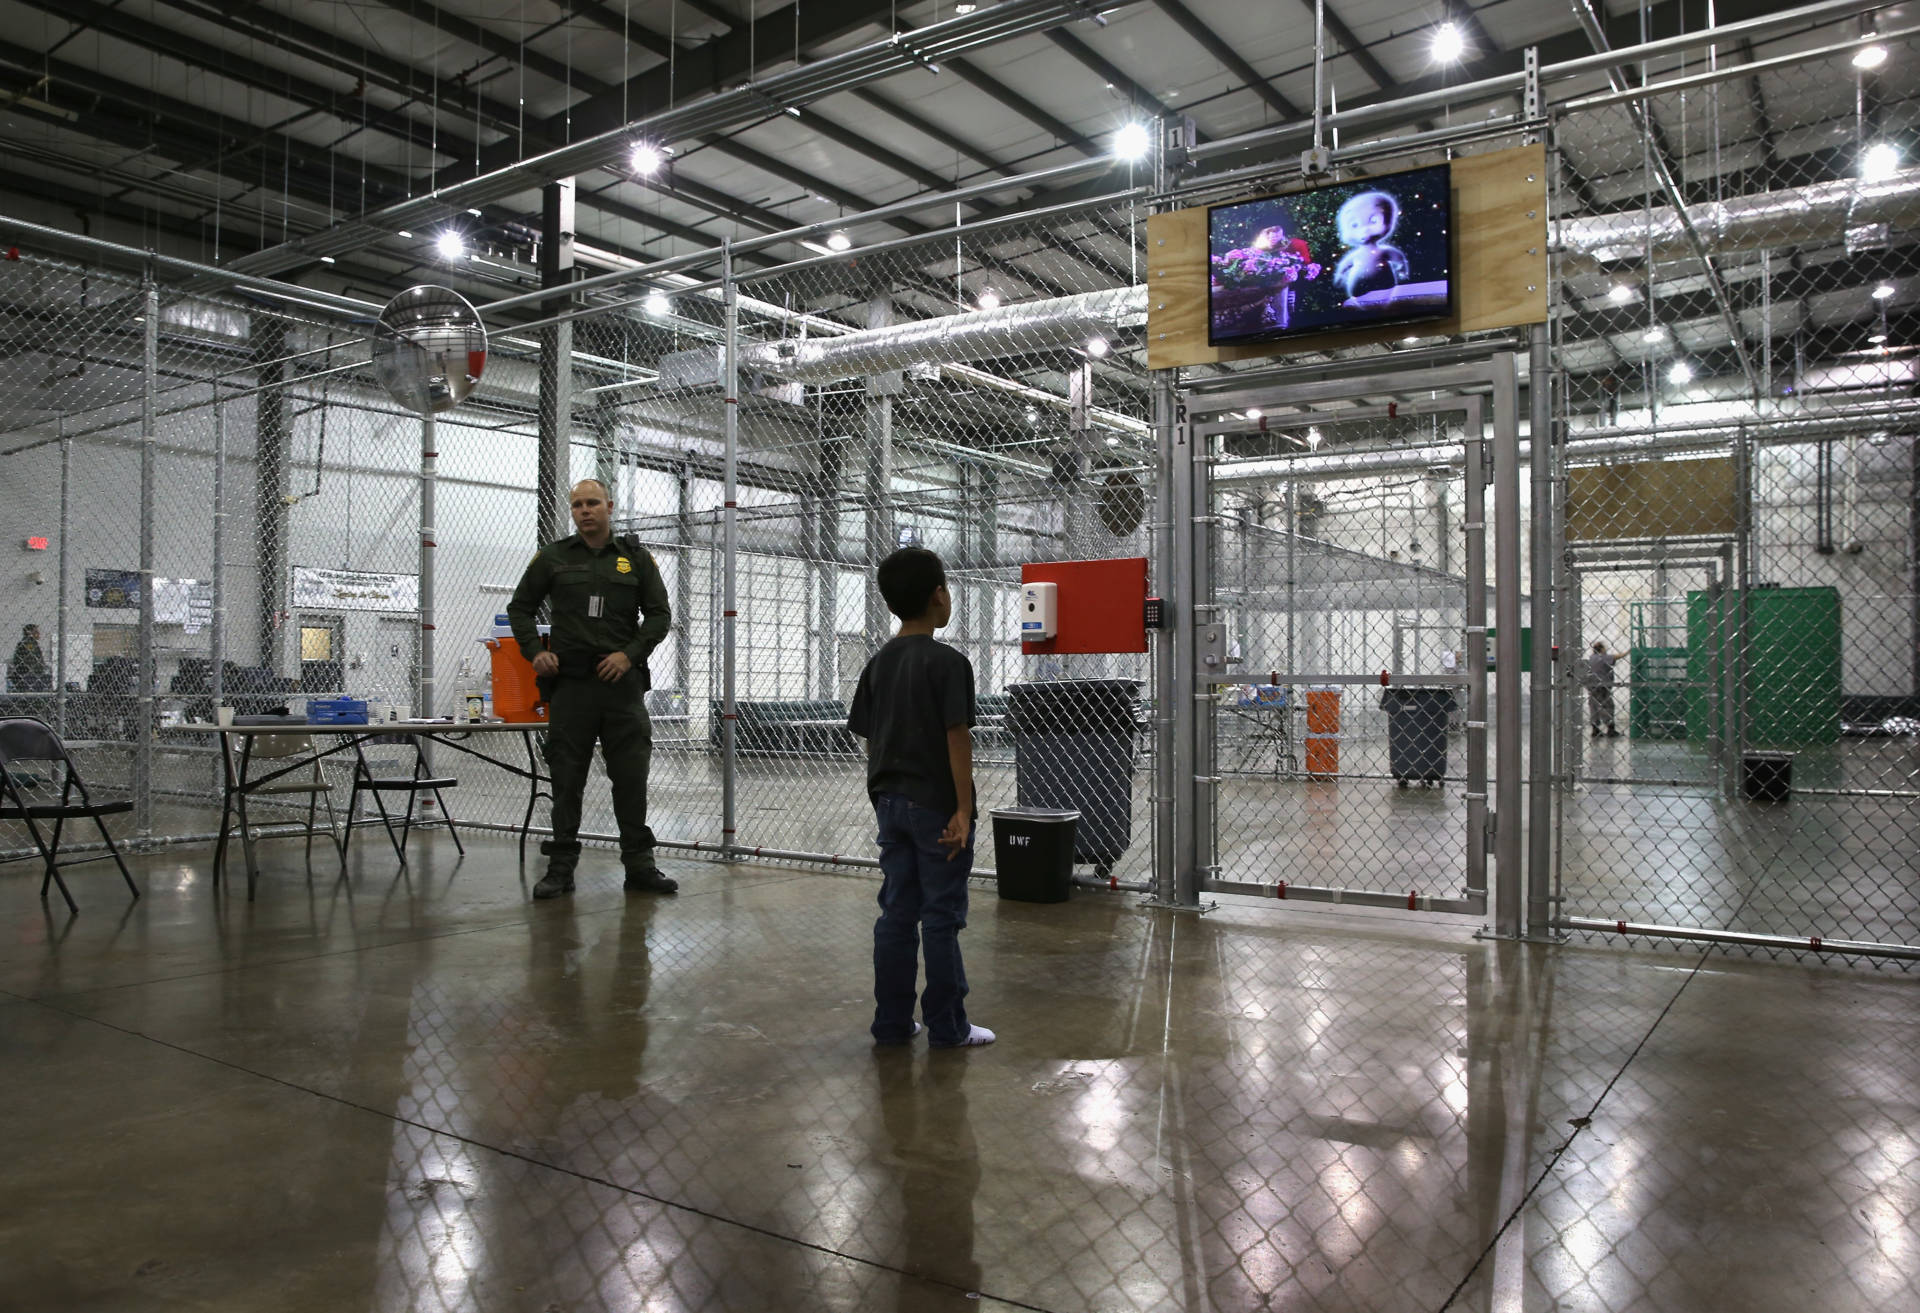 A boy from Honduras watches a movie at a detention facility run by the U.S. Border Patrol on September 8, 2014 in McAllen, Texas.  John Moore/Getty Images